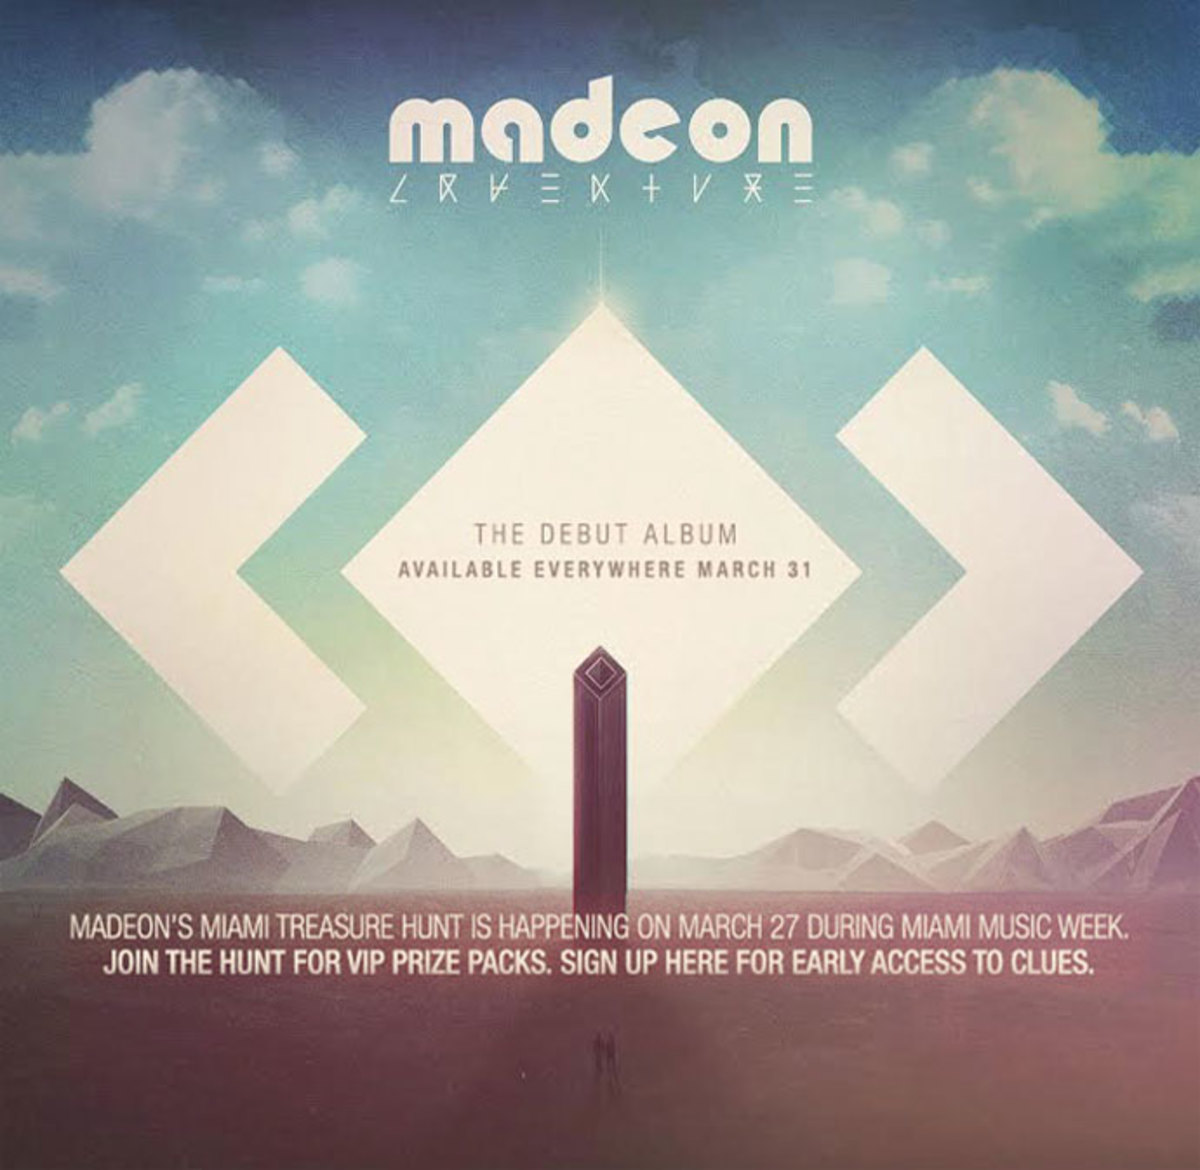 Madeon Is Taking You On An Adventure During Miami Music Week, Sign Up For The Treasure Hunt in South Beach On March 27th